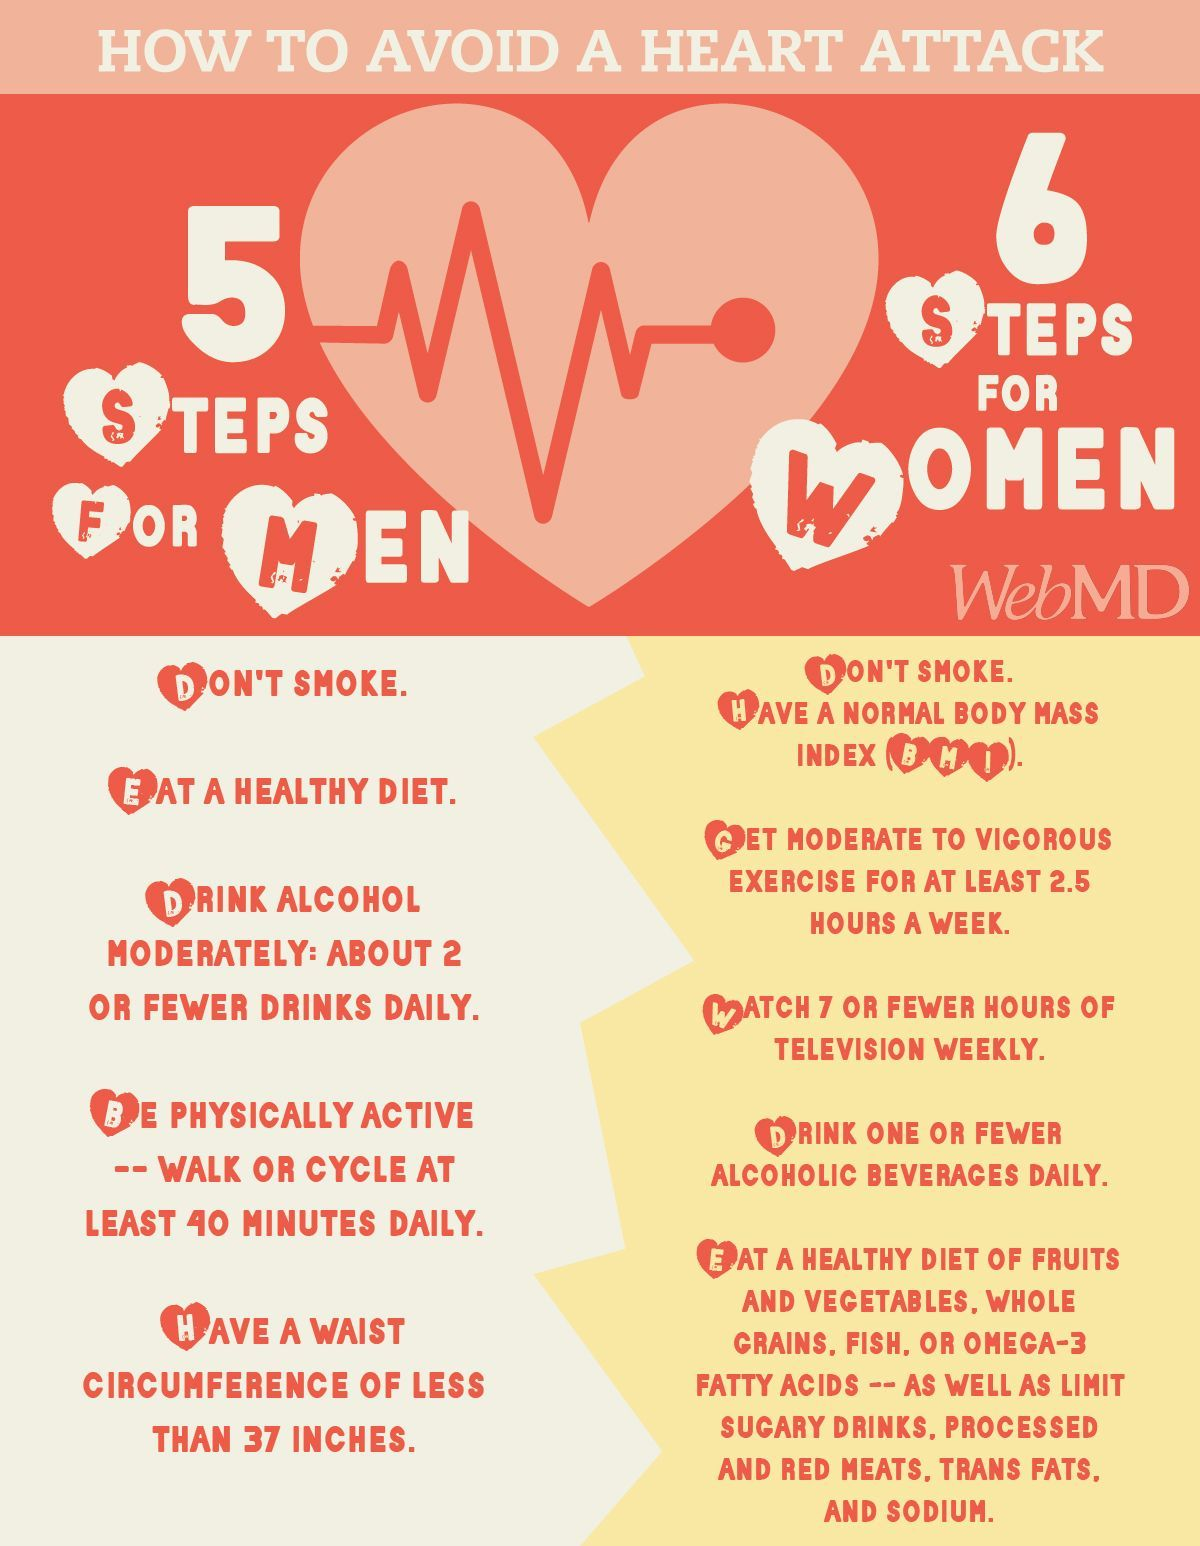 Healthy Habits for Your Heart For 4 out of 5 people, disease need not happen. It's not necessary. It can be prevented. What works for men? What works for women? Here's a checklist for both.For 4 out of 5 people, disease need not happen. It's not necessary. It can be prevented. What works for men? What works for women? Here's a checklist for both.